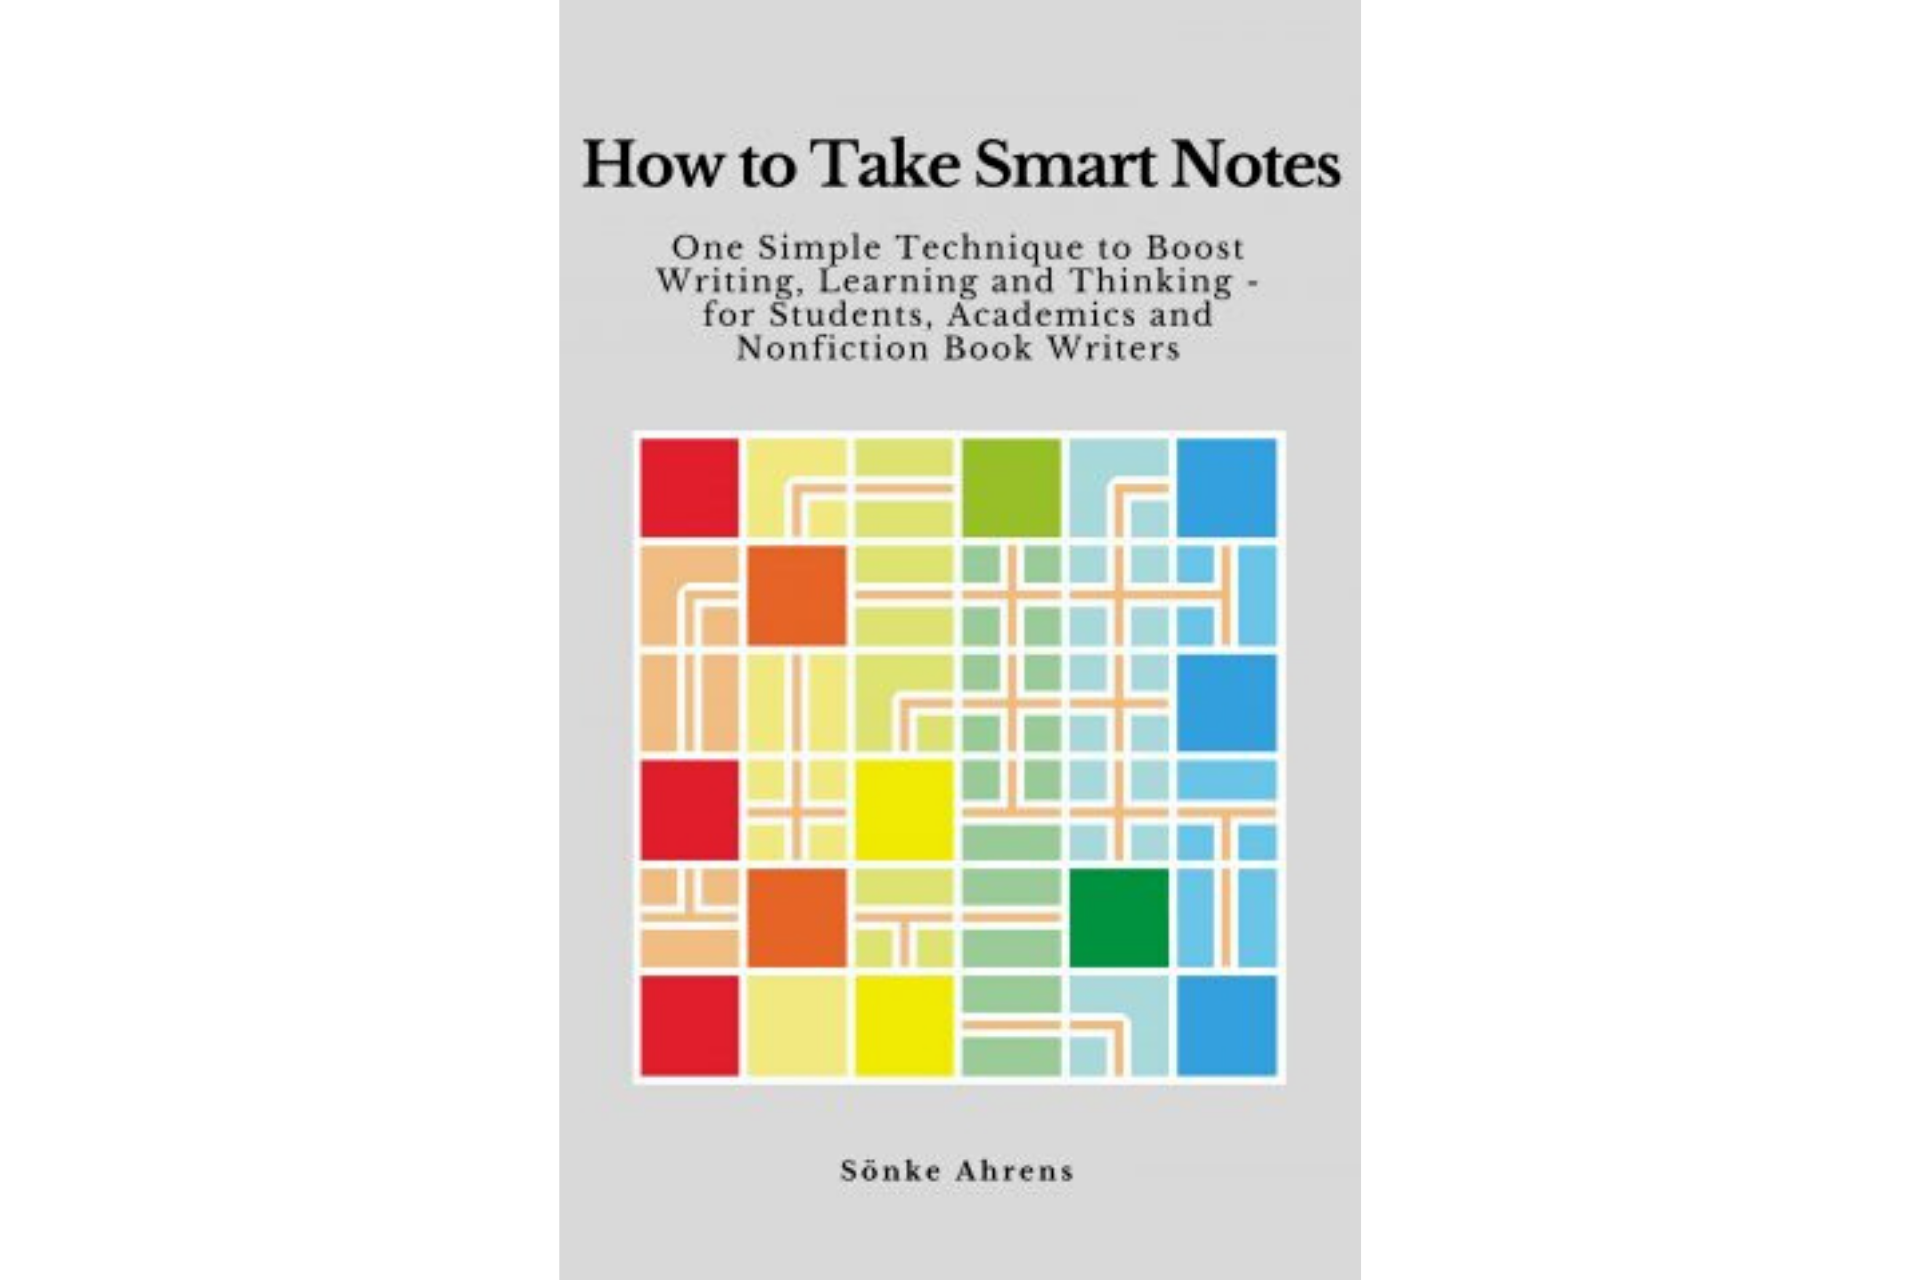 How to Take Smart Notes by Sonke Ahrens